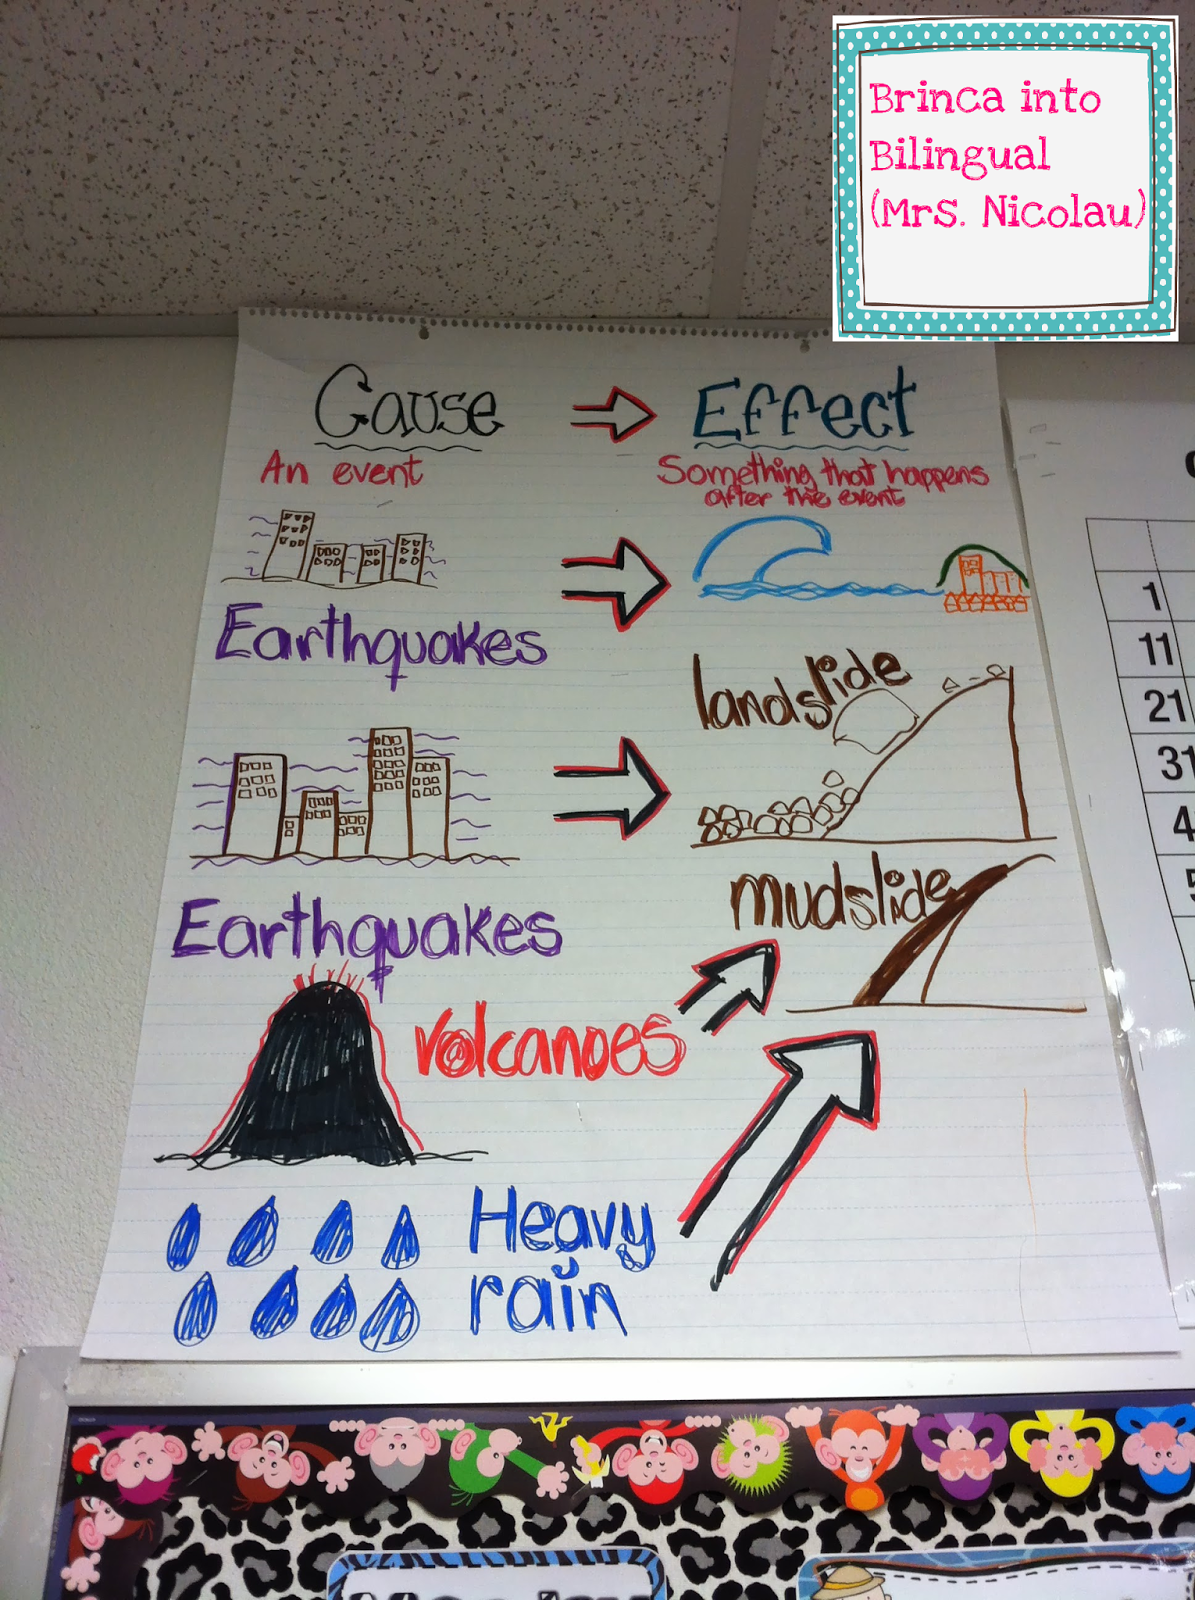 report outline natural disasters writing an essay different cause and effect chart to show the different results of various natural disasters the students could do the research to the effect of whatever natural